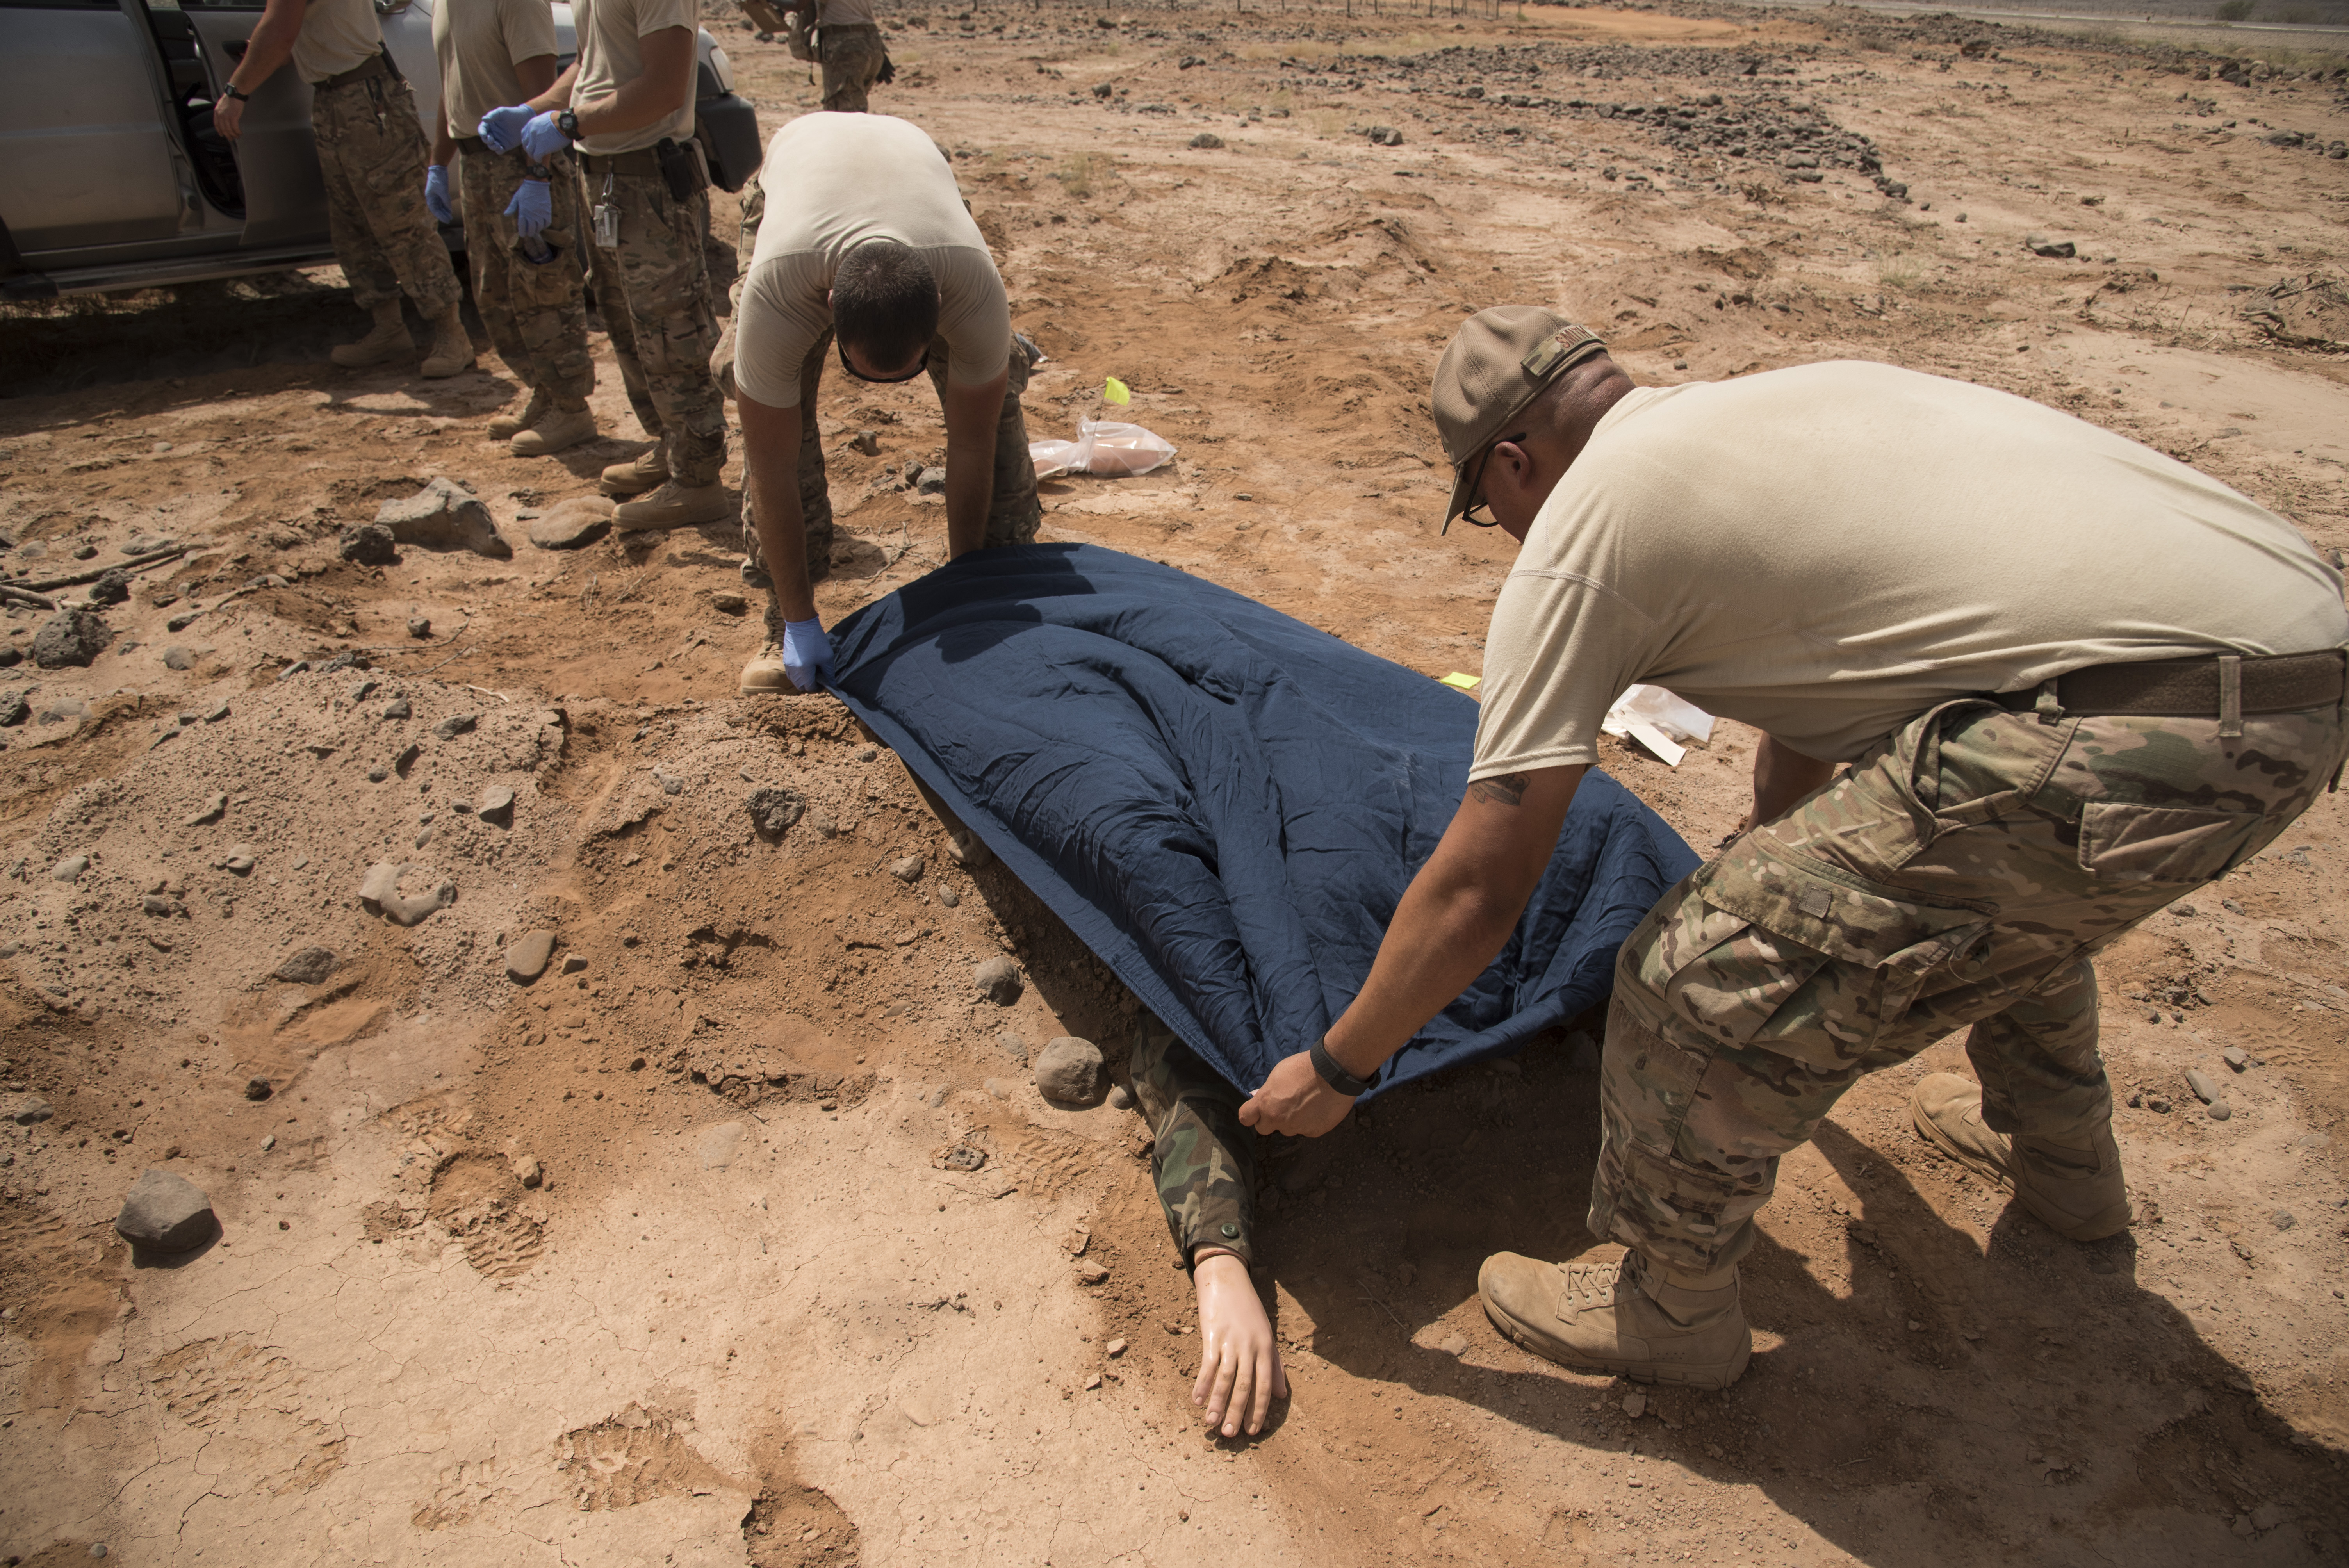 DJIBOUTI- U.S. Air Force 1st Lt. Everett Karpauskas and Tech. Sgt. Anthony Smith, 870th Air Expeditionary Squadron, cover a mock casualty during a mass casualty exercise, June 1, 2016, at a nearby airfield. Services personnel from the 870th Air Expeditionary Squadron, along with volunteers from the U.S. Navy, Marine Corps, Army and Air Force, test their skills in search and recovery and mortuary affairs collection point processes during a simulated vehicle-borne improvised explosive device explosion resulting in two casualties. (U.S. Air Force photo by Staff Sgt. Tiffany DeNault)